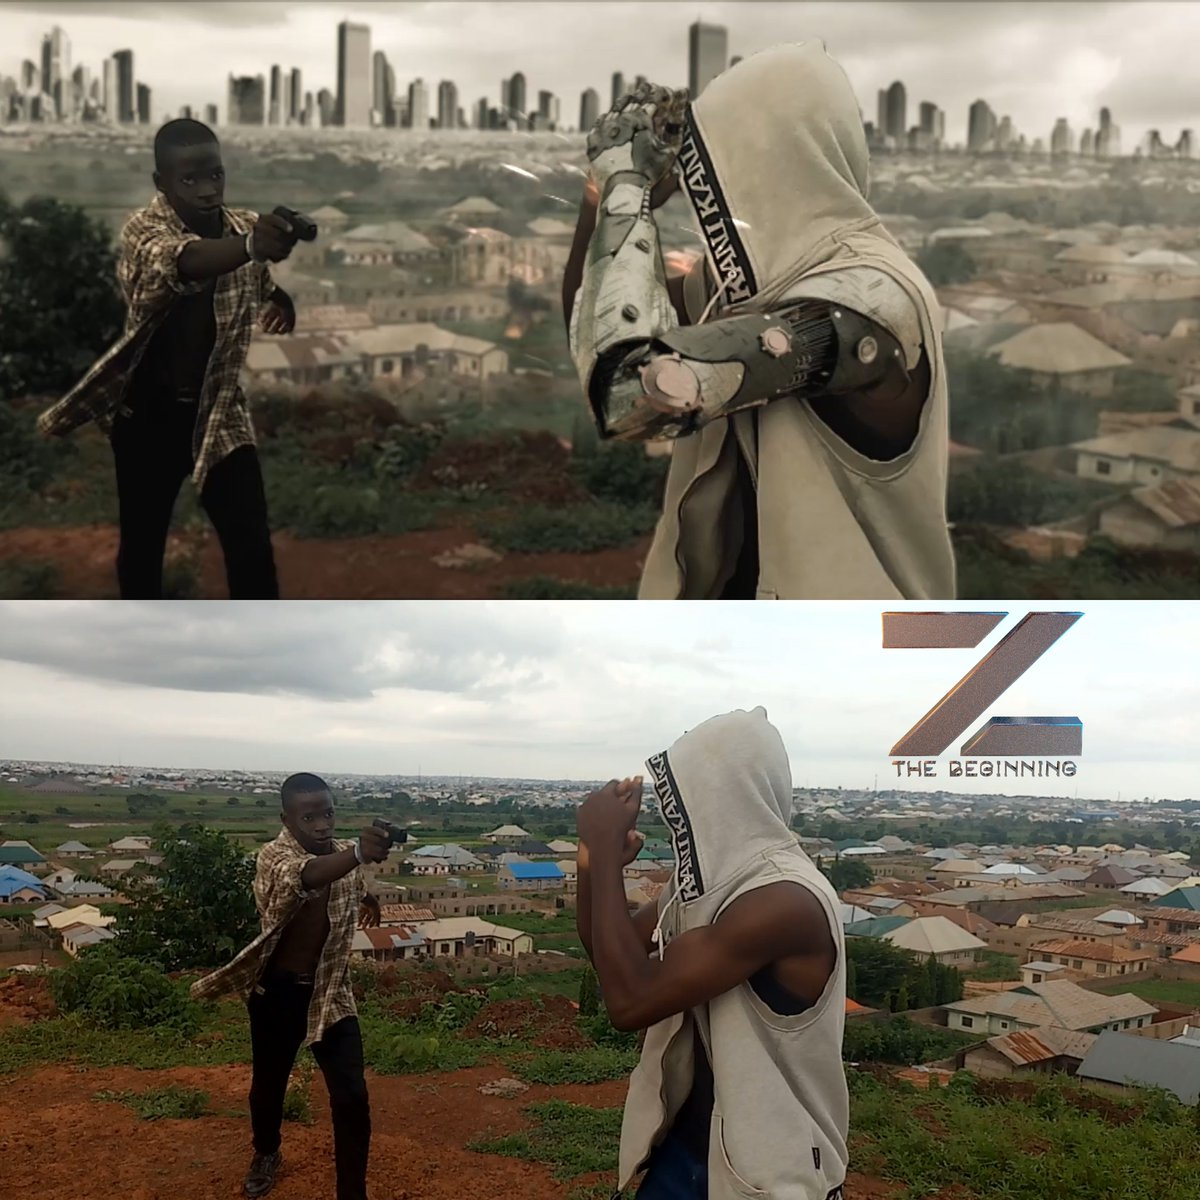 D56epbHW4AEBndv - Read The Incredible True Story of the Young Kaduna Sci-Fi filmmakers